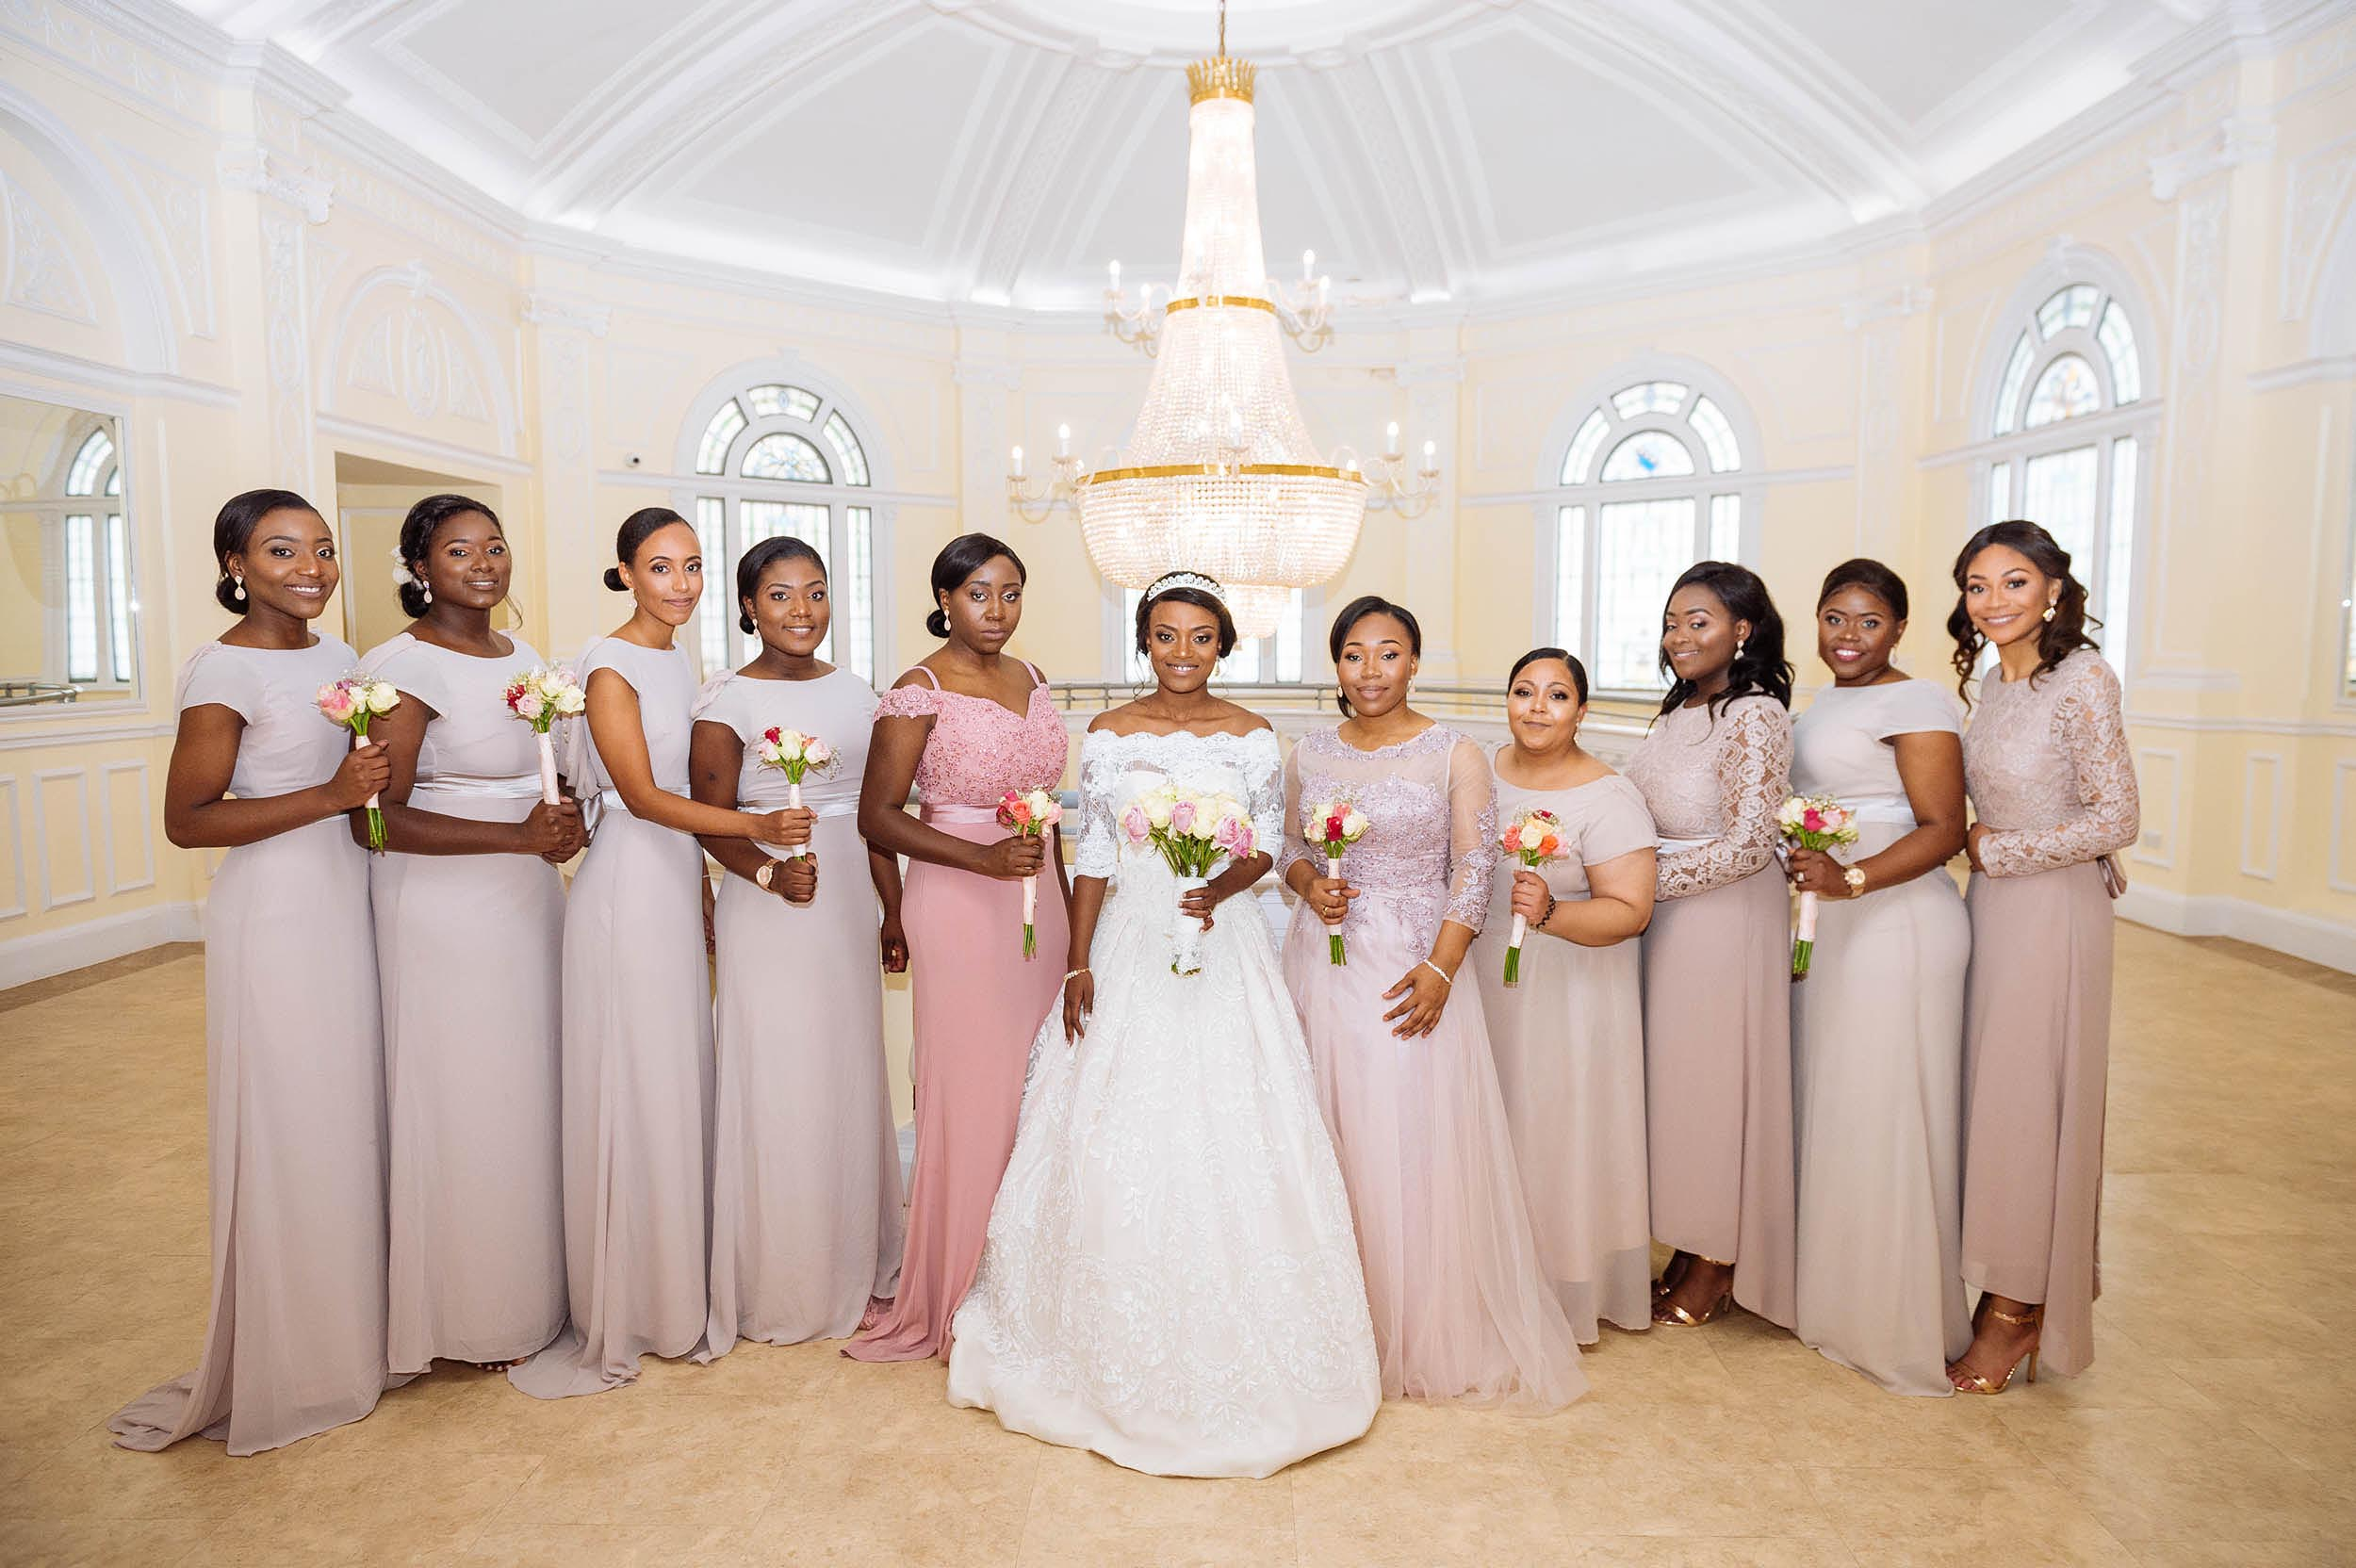 group-portrait-bridal-party-uckg-kilburn-girls-bridsmaids-london-photography